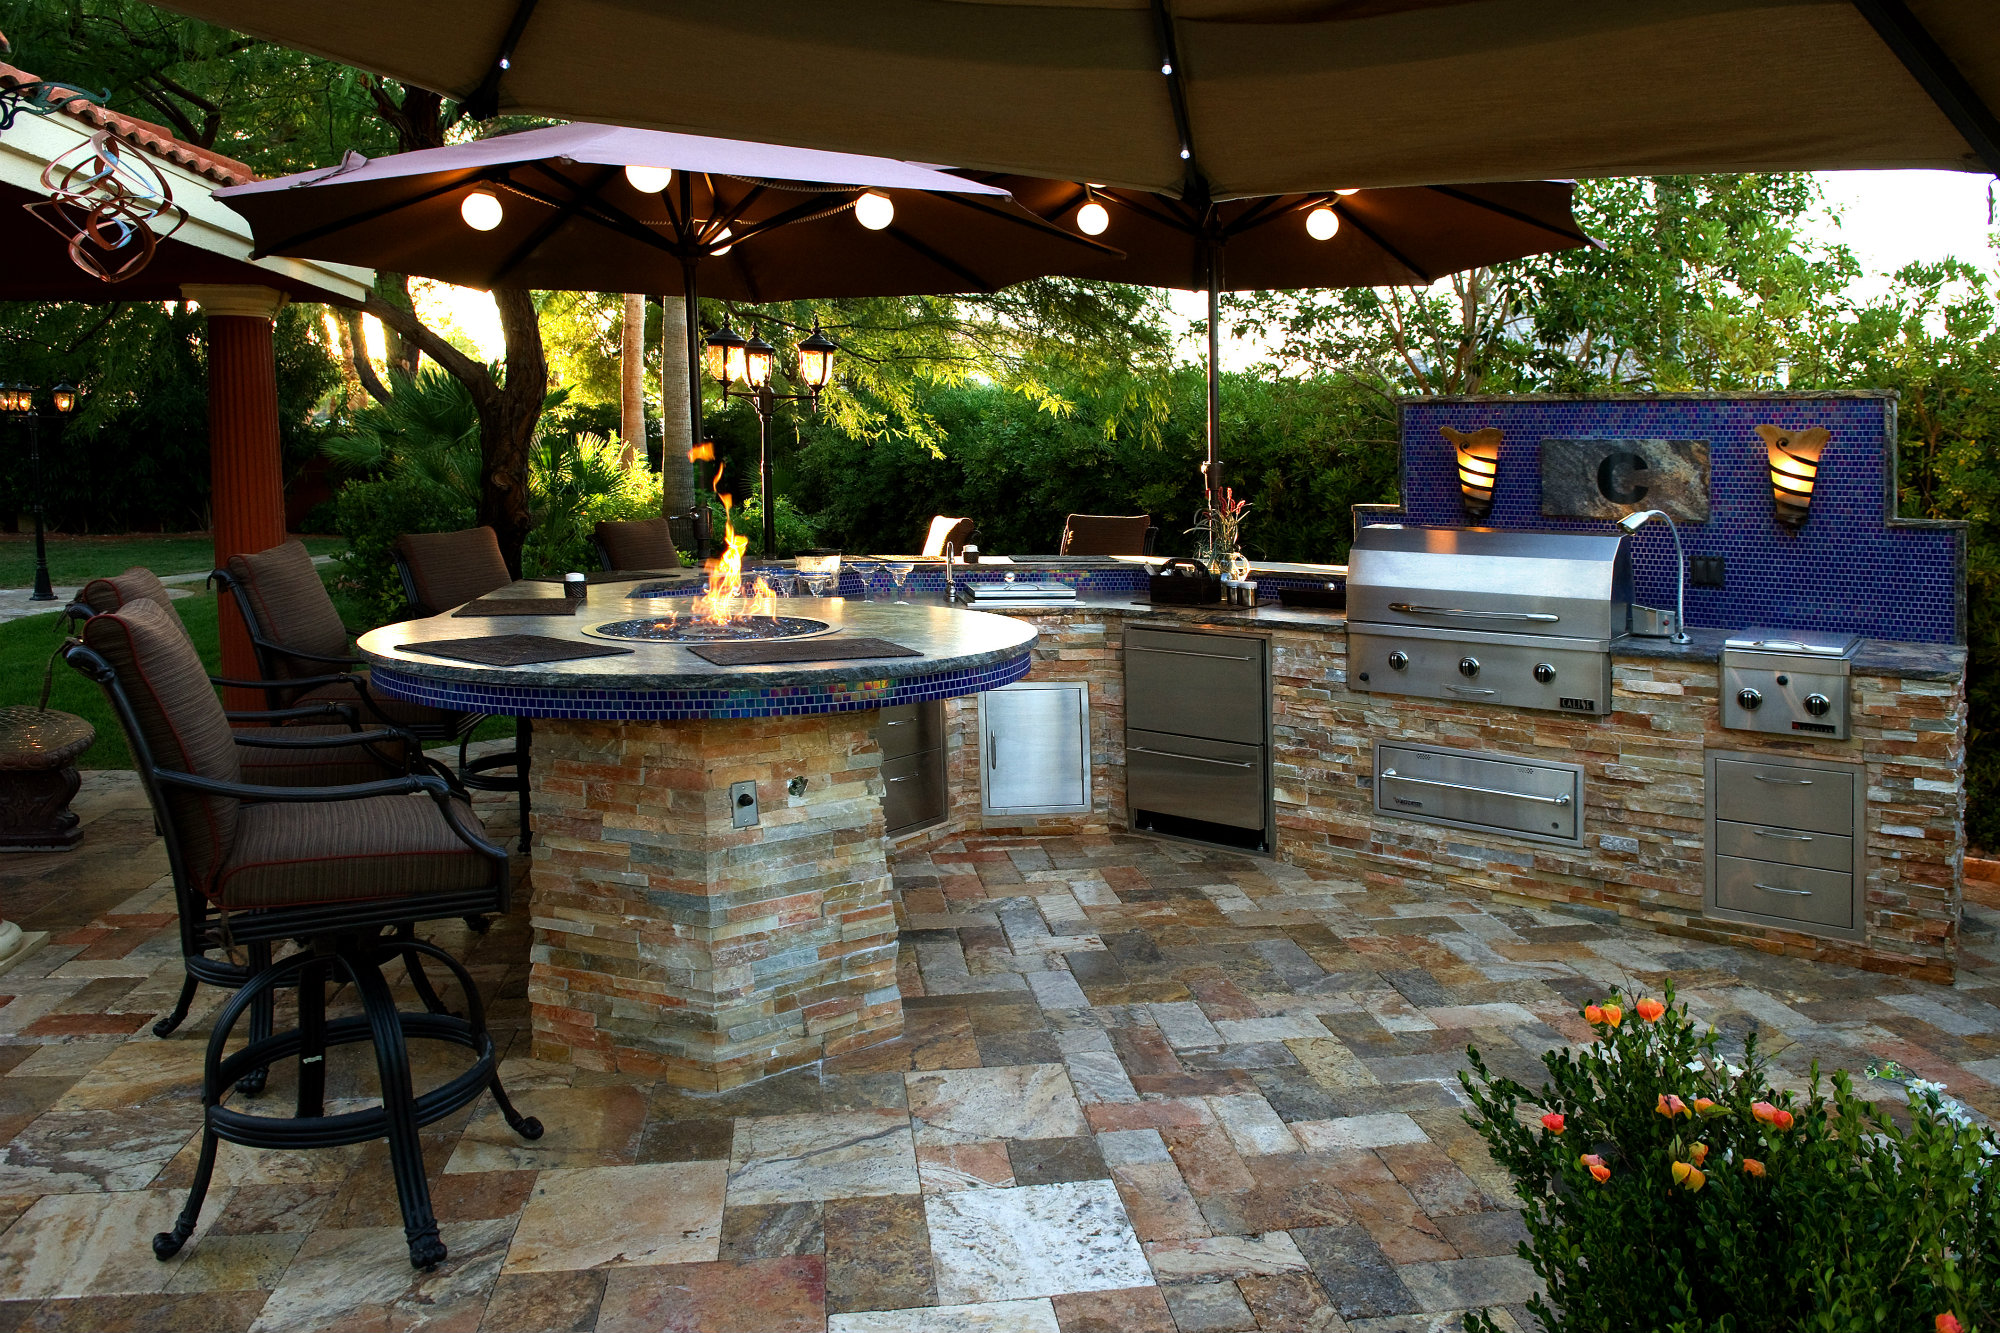 Backyard Living Trends | Pool & Spa News | Accessories ... on Back Garden Patio Ideas  id=98742